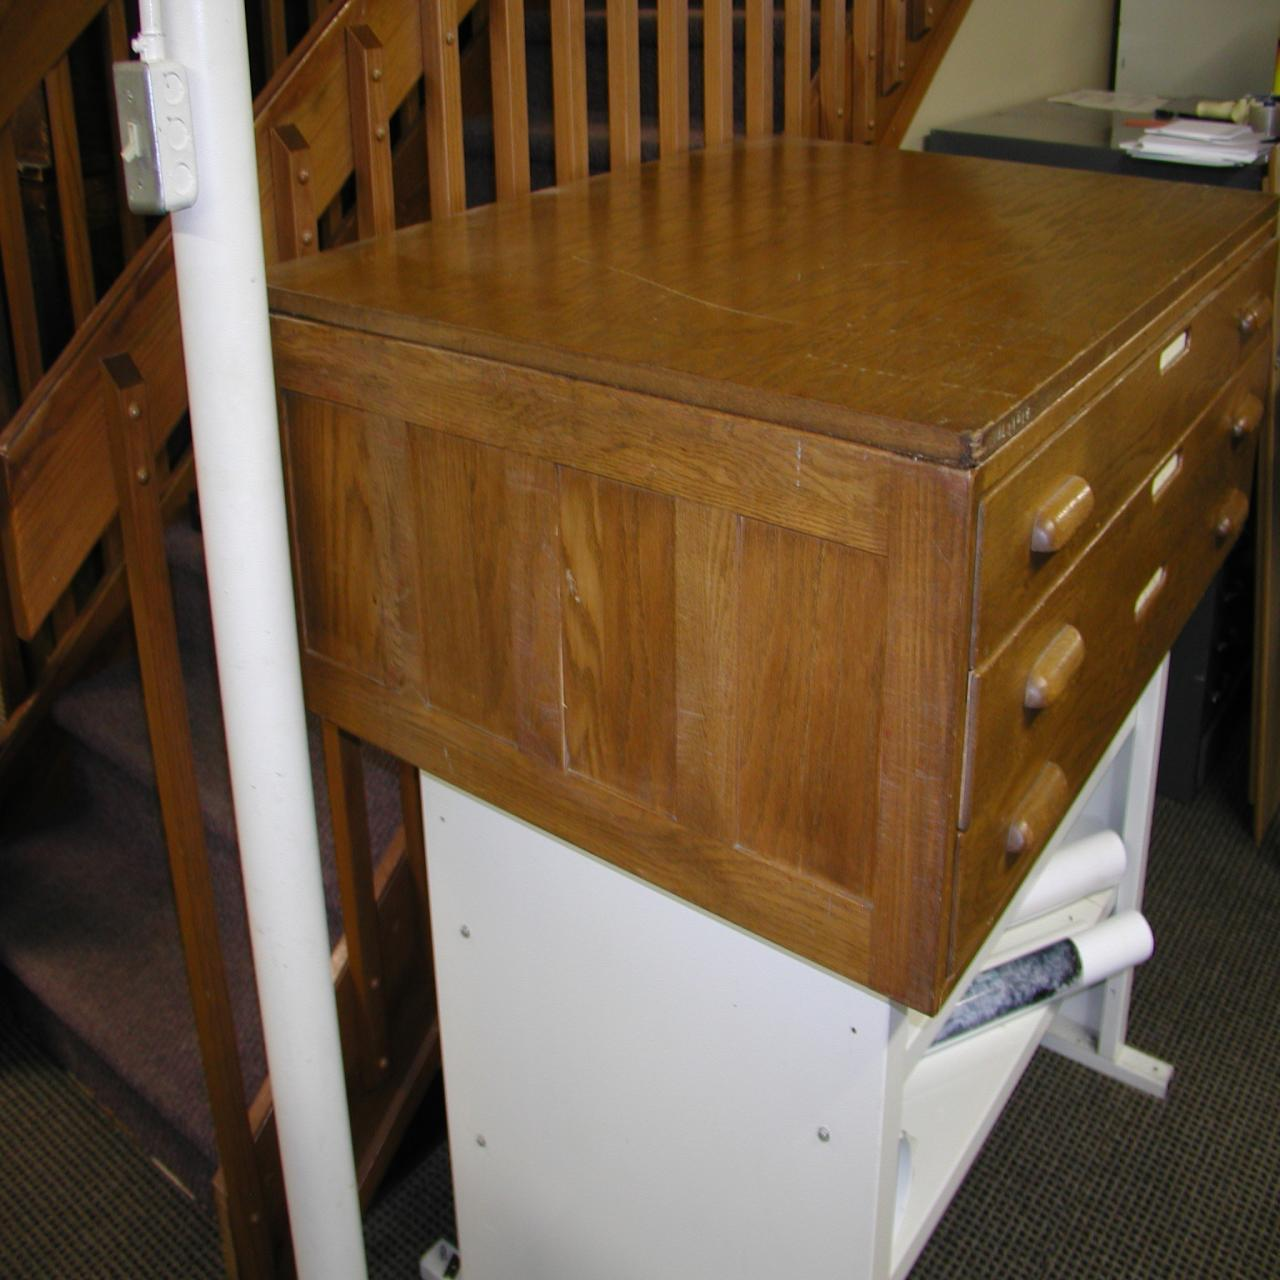 Lot #20: ANTIQUE WOODEN FLAT FILE CABINET - WireBids